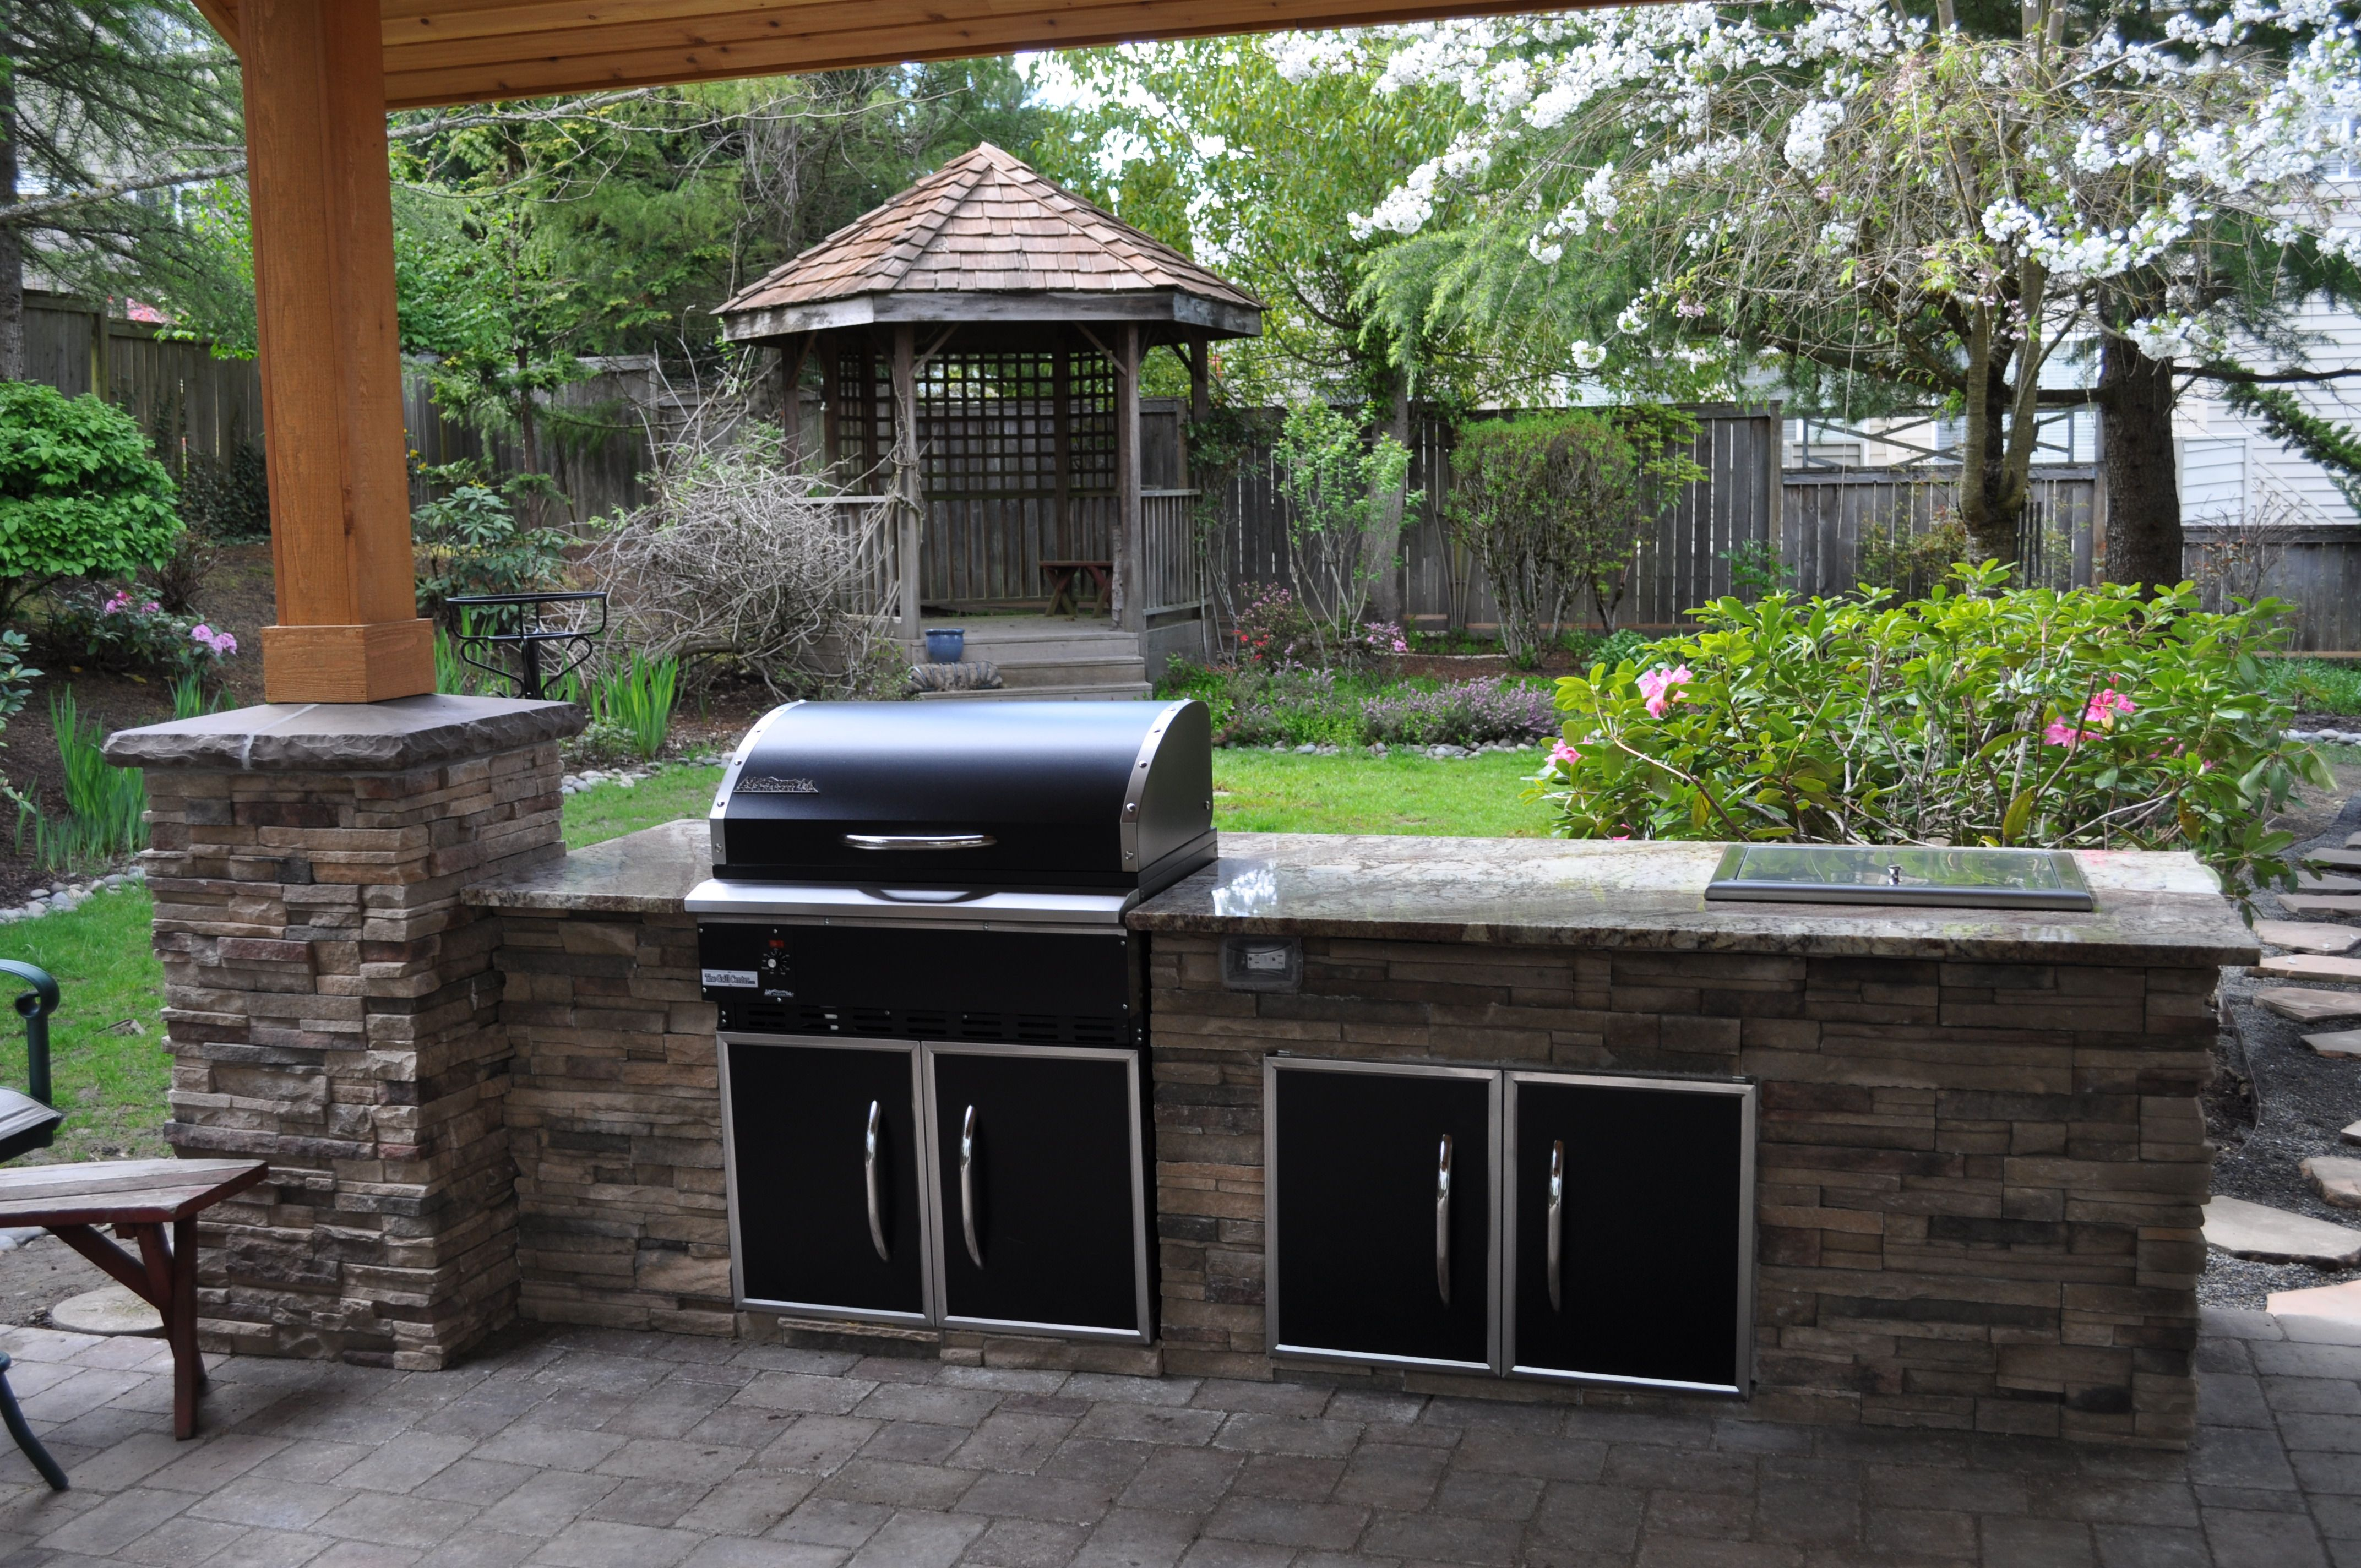 Tips How To Keep Grilling All Year with the Right Outdoor Kitchen